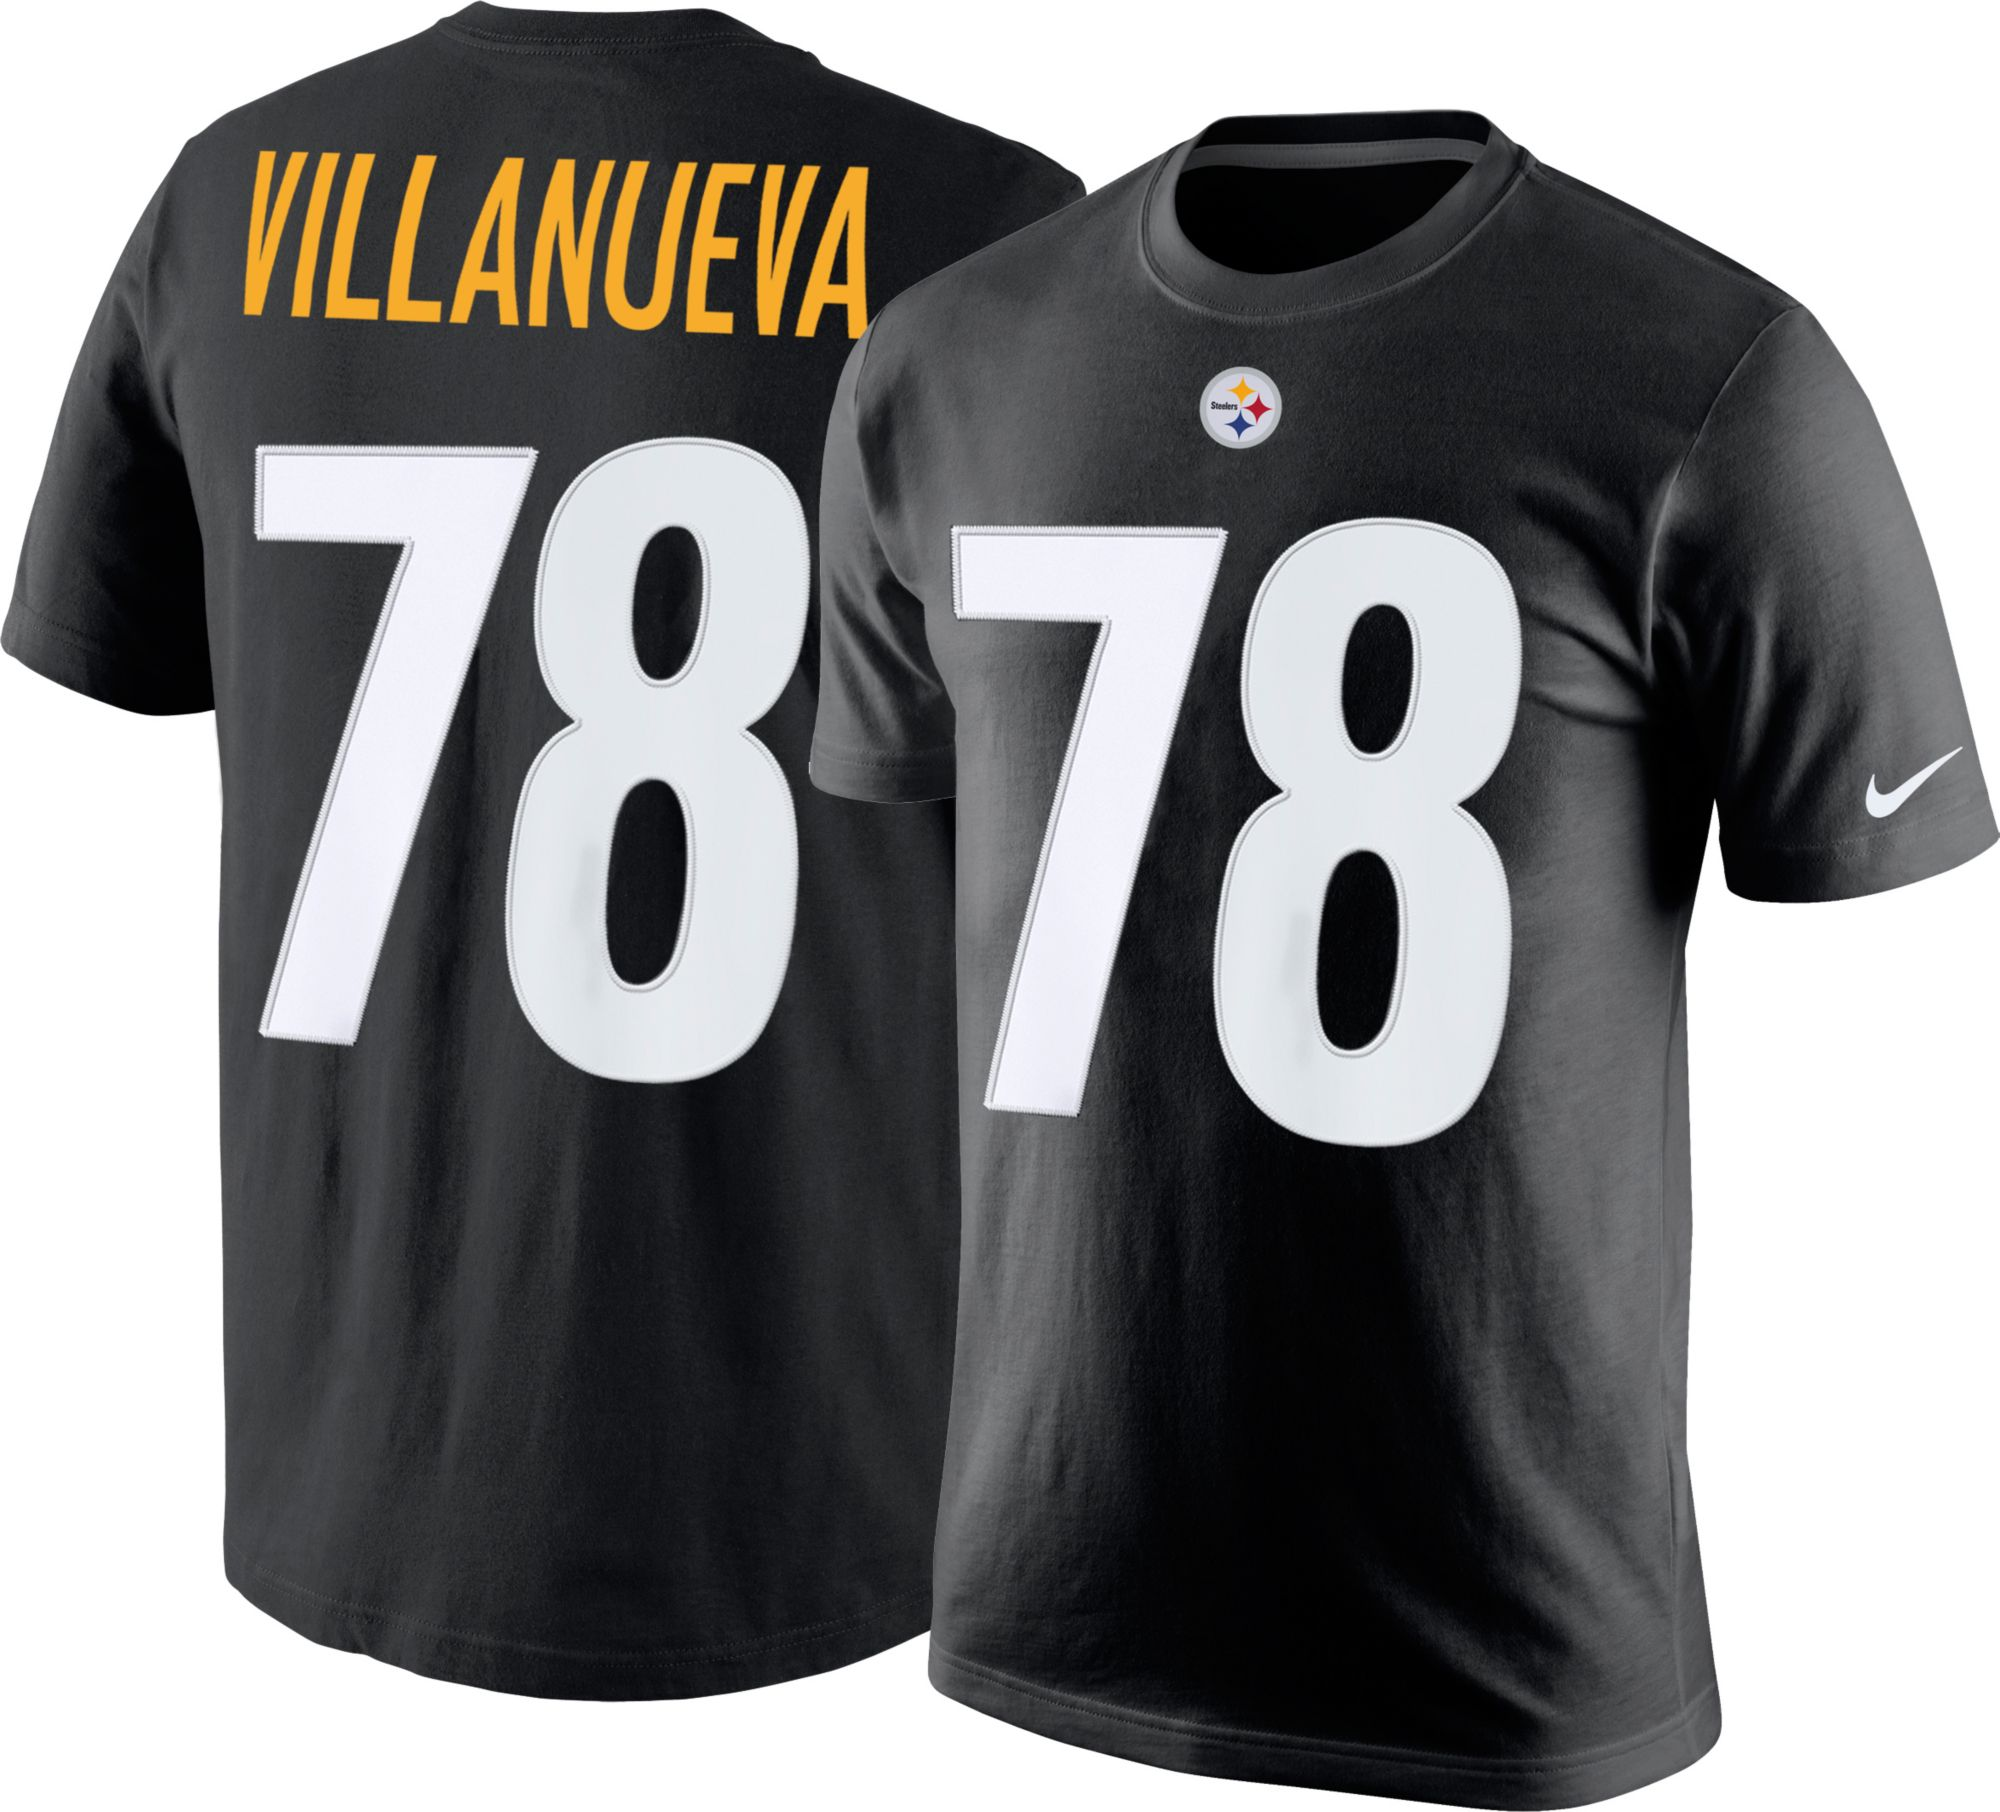 villanueva jersey steelers